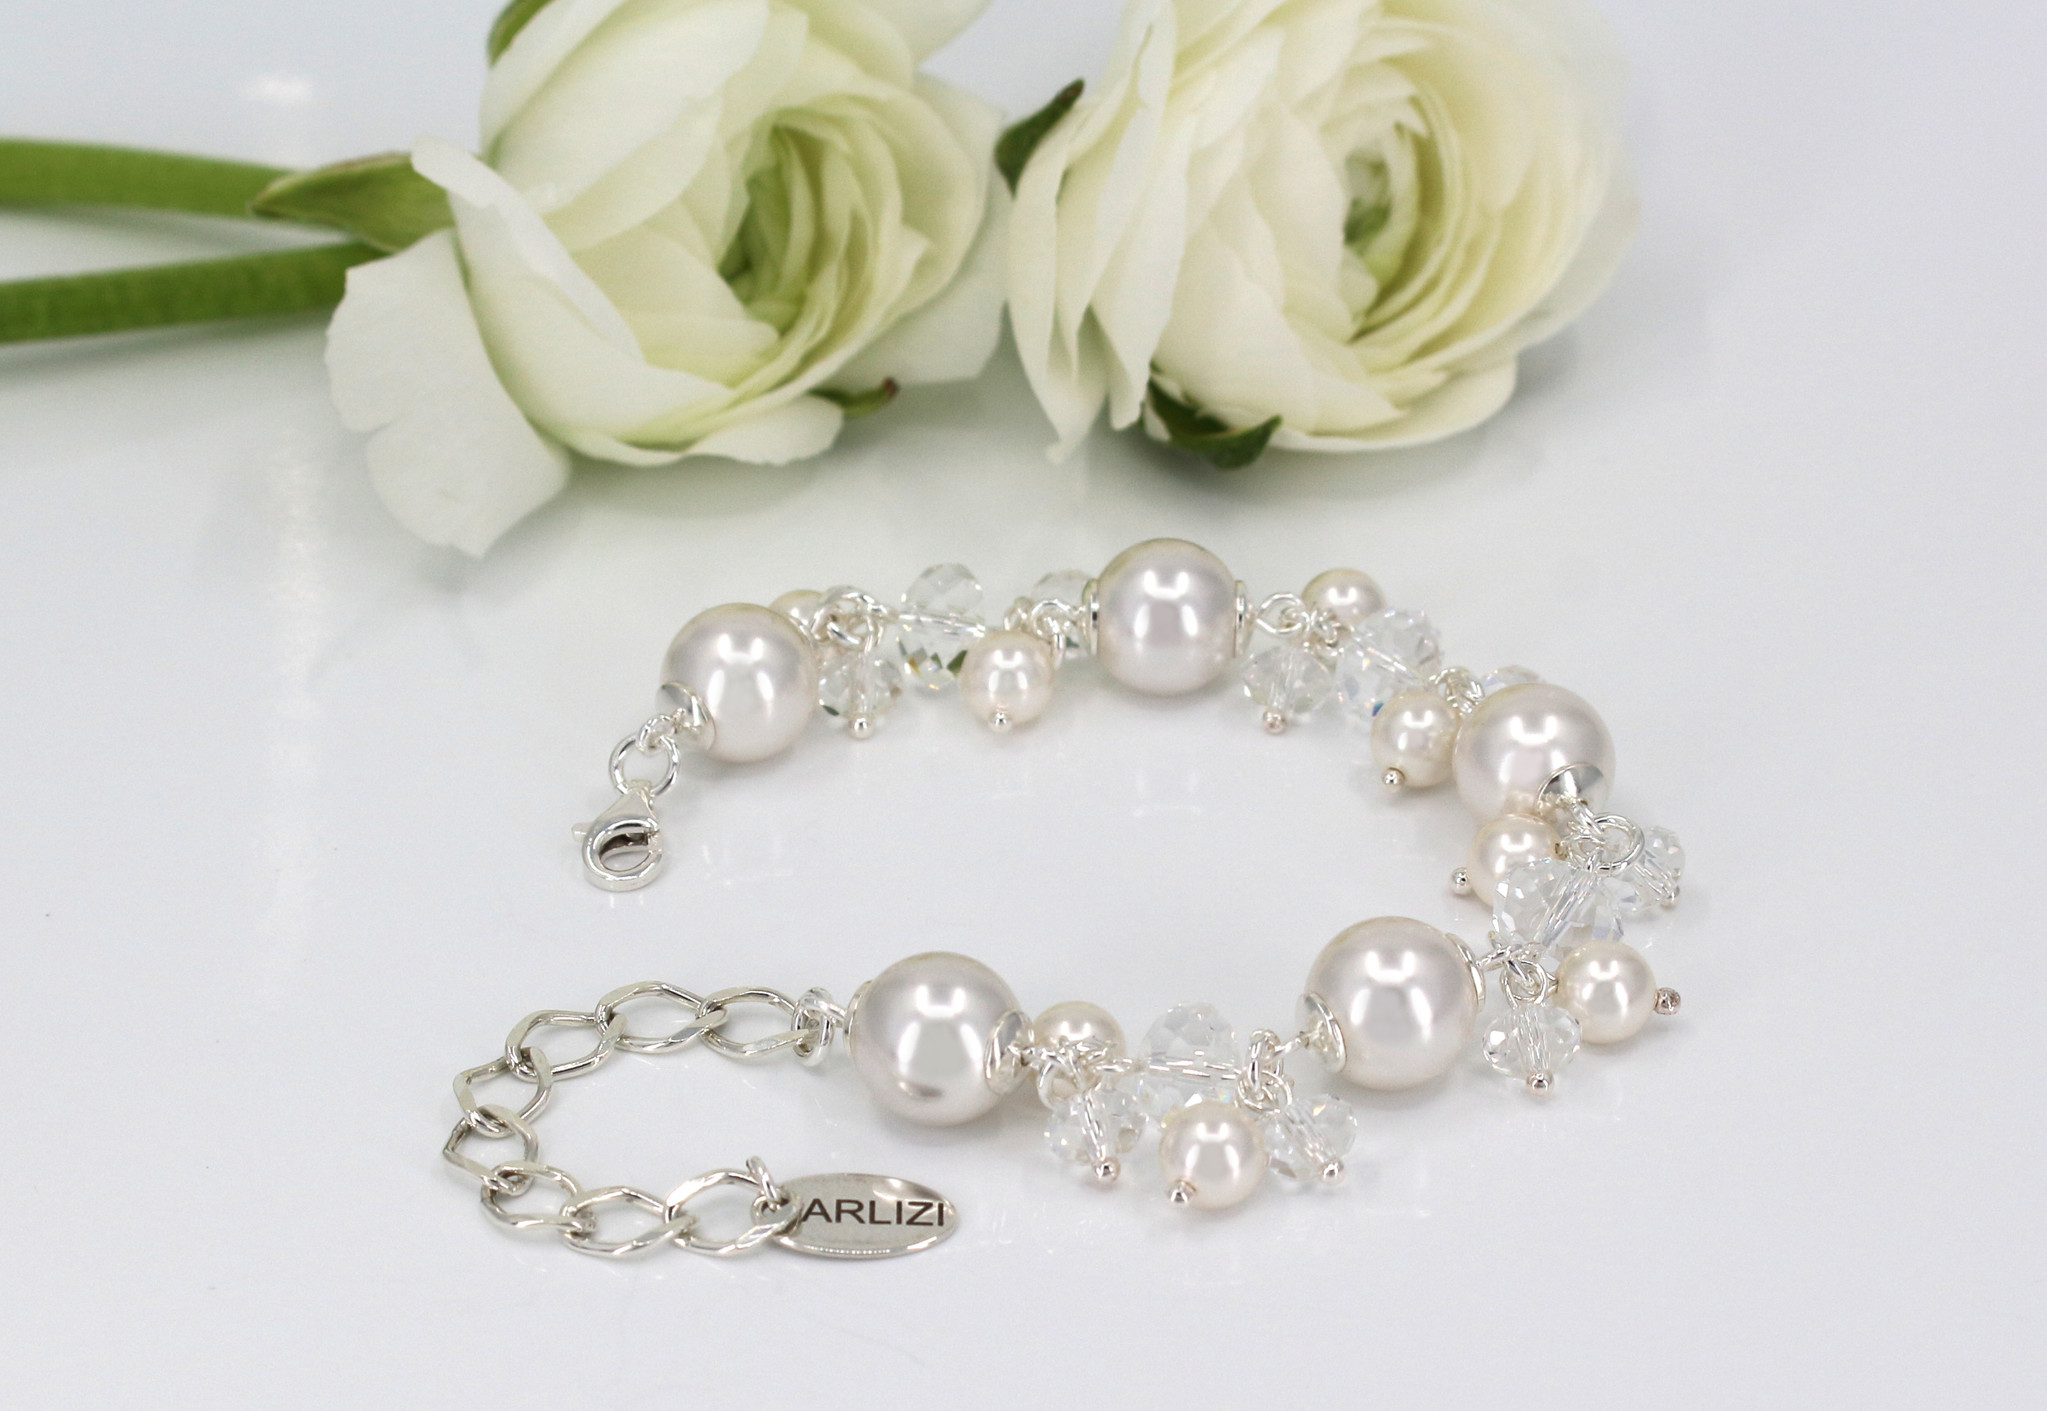 ARLIZI Bridal jewelry